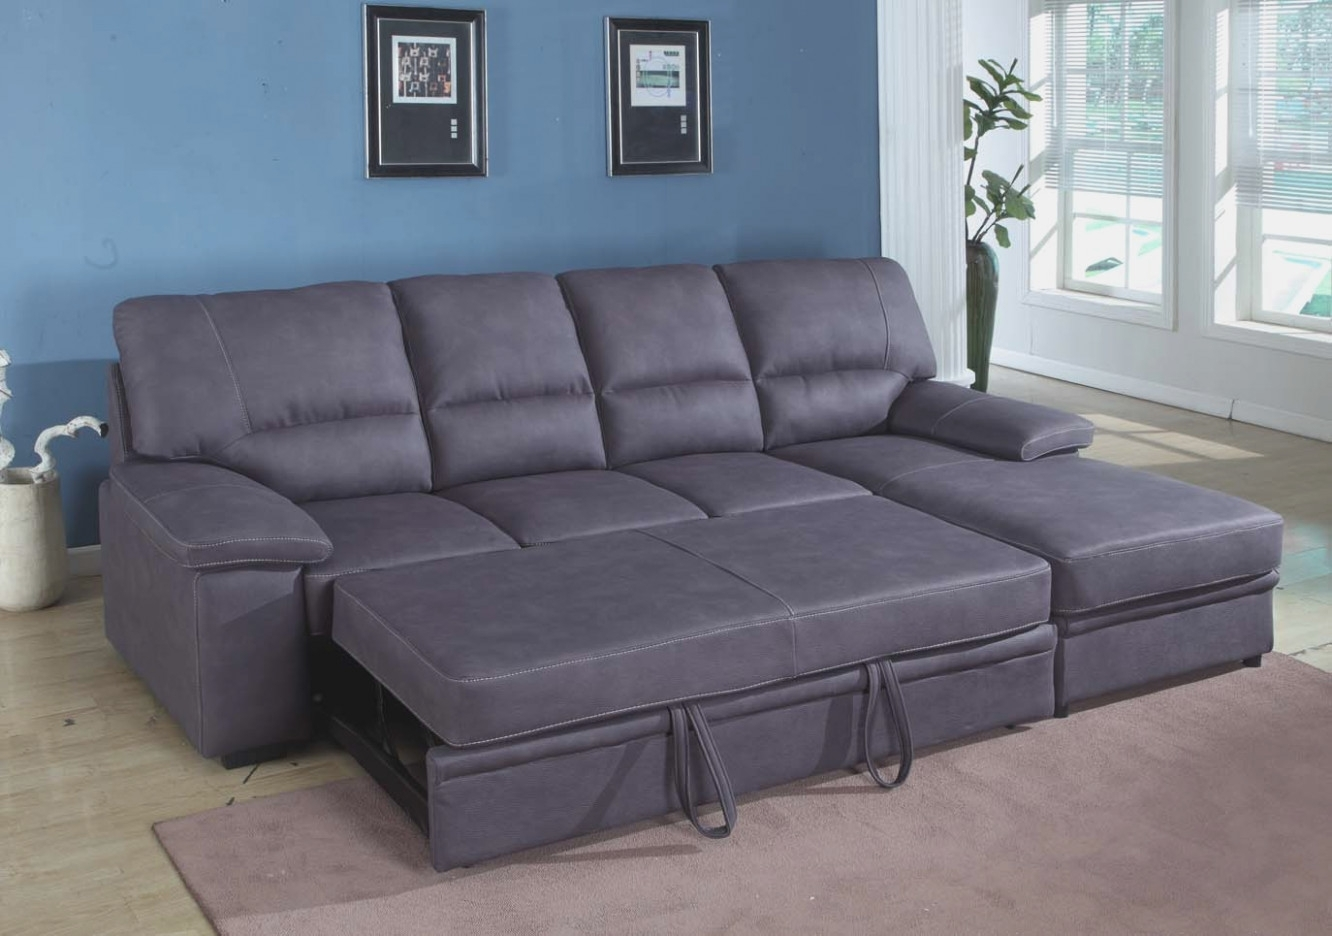 Grey Sectional Sleeper Sofa | Thesofasite.co regarding Arrowmask 2 Piece Sectionals With Raf Chaise (Image 12 of 30)